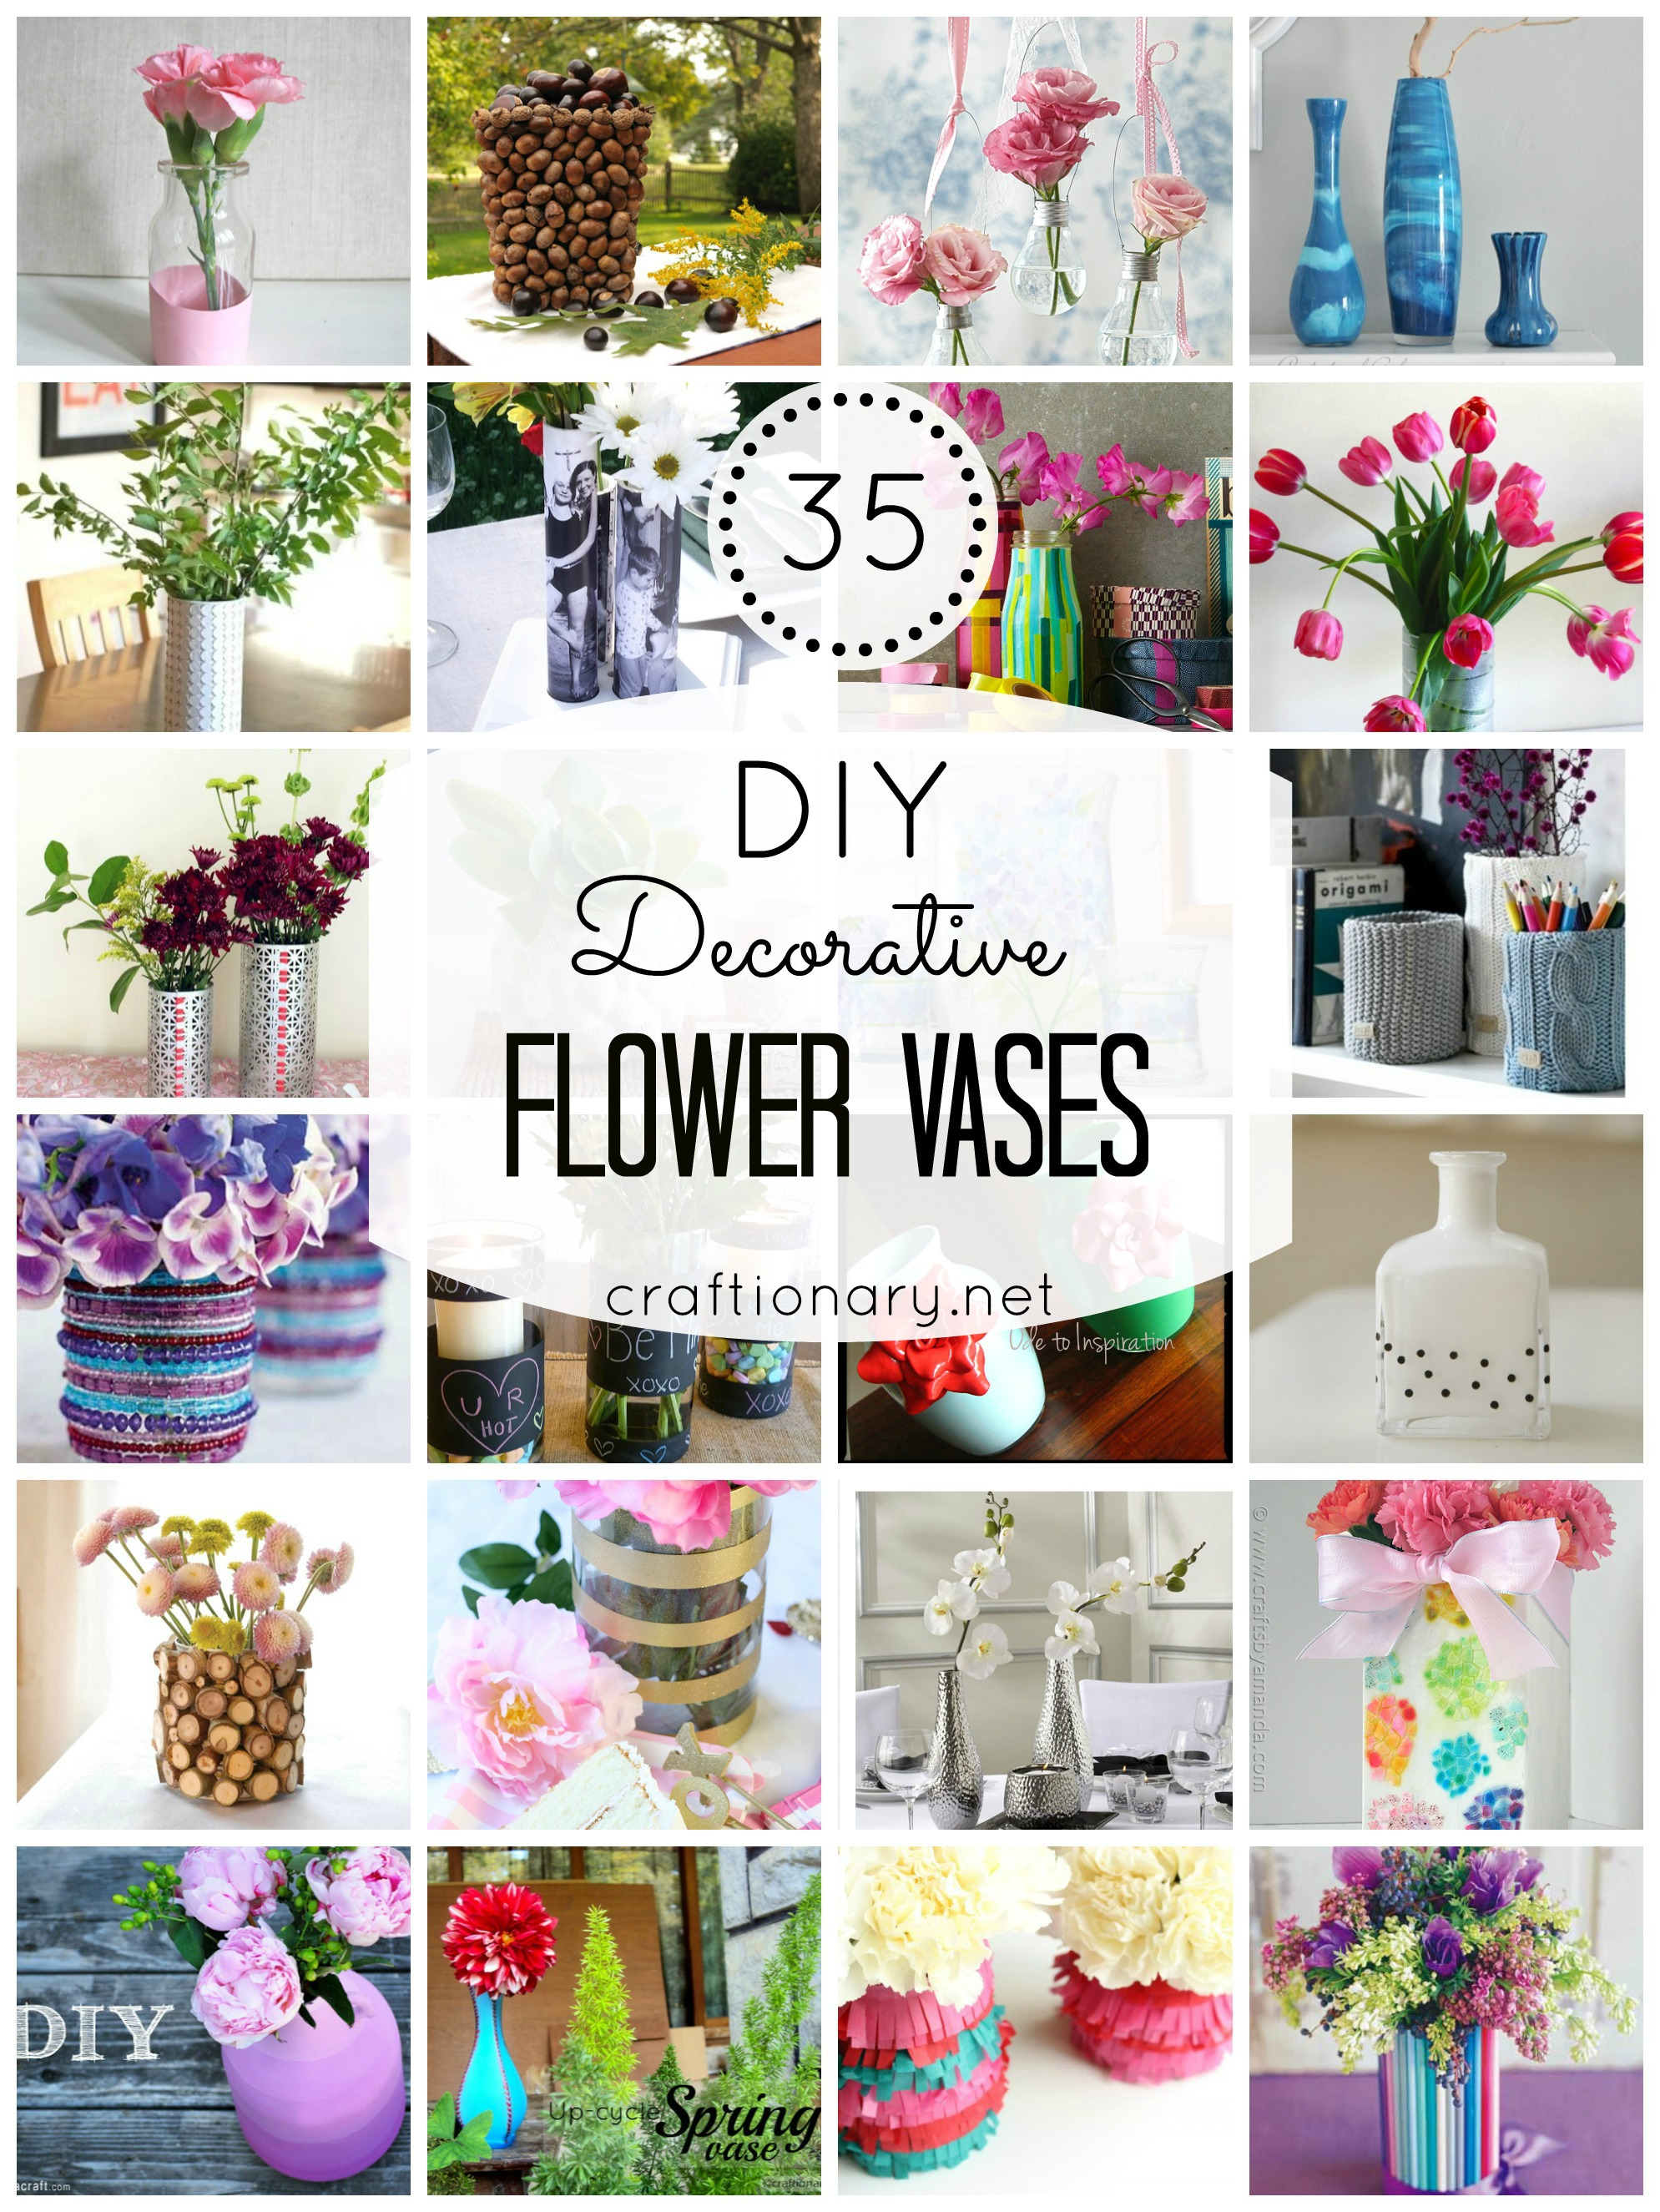 So I Decided To Share Some Super Creative Ways Make DIY Vases Found 35 Tutorials Flower That Are Crafty And Clever